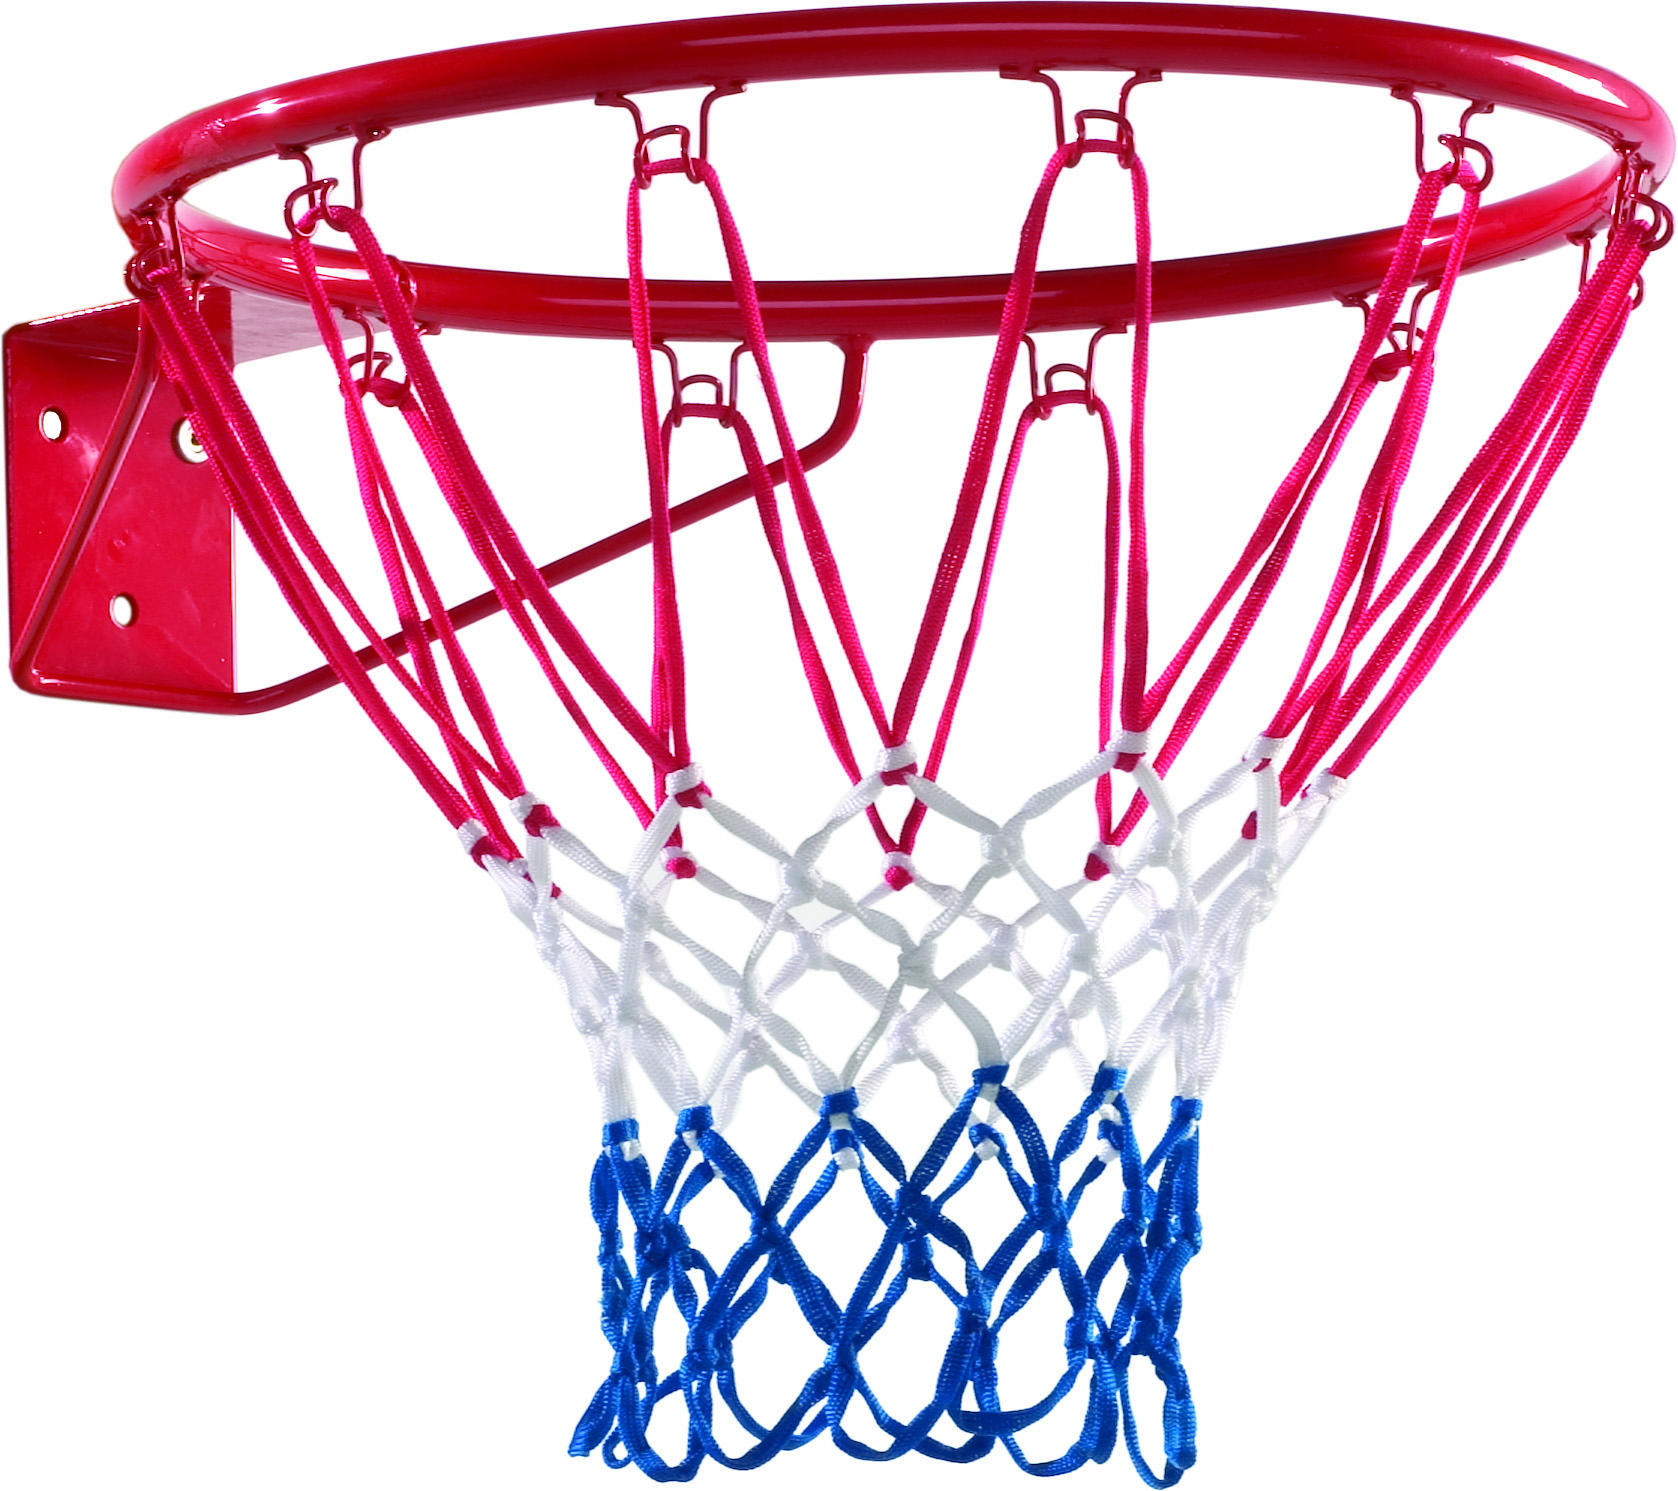 KBT | Basketbalring